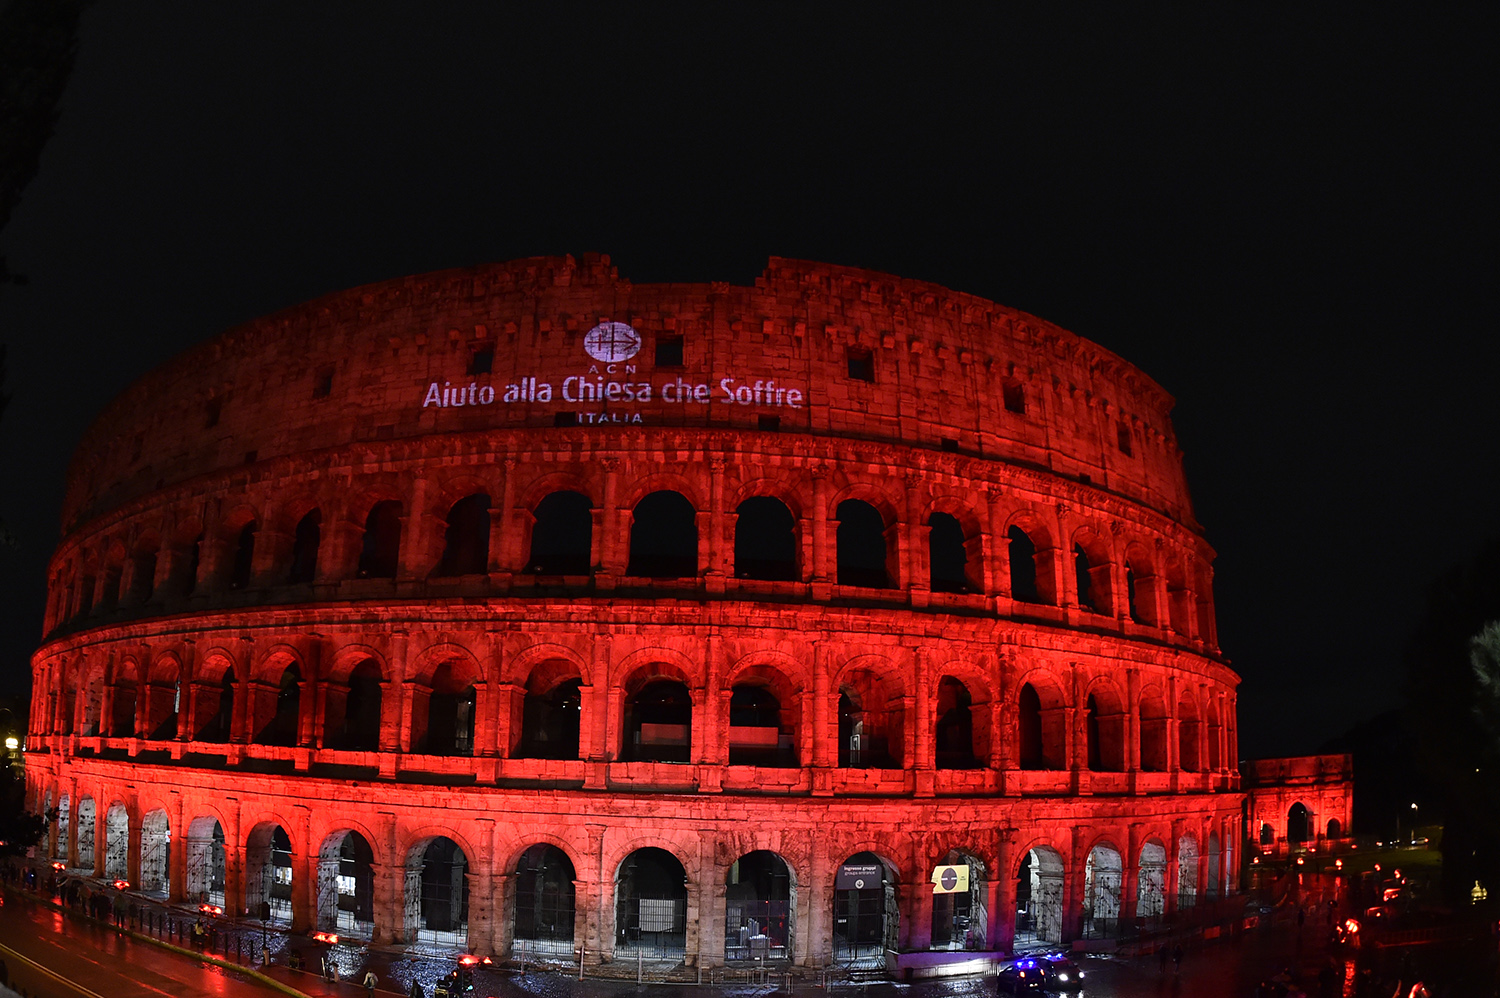 ACN Event - Illuminated Coliseum in Red